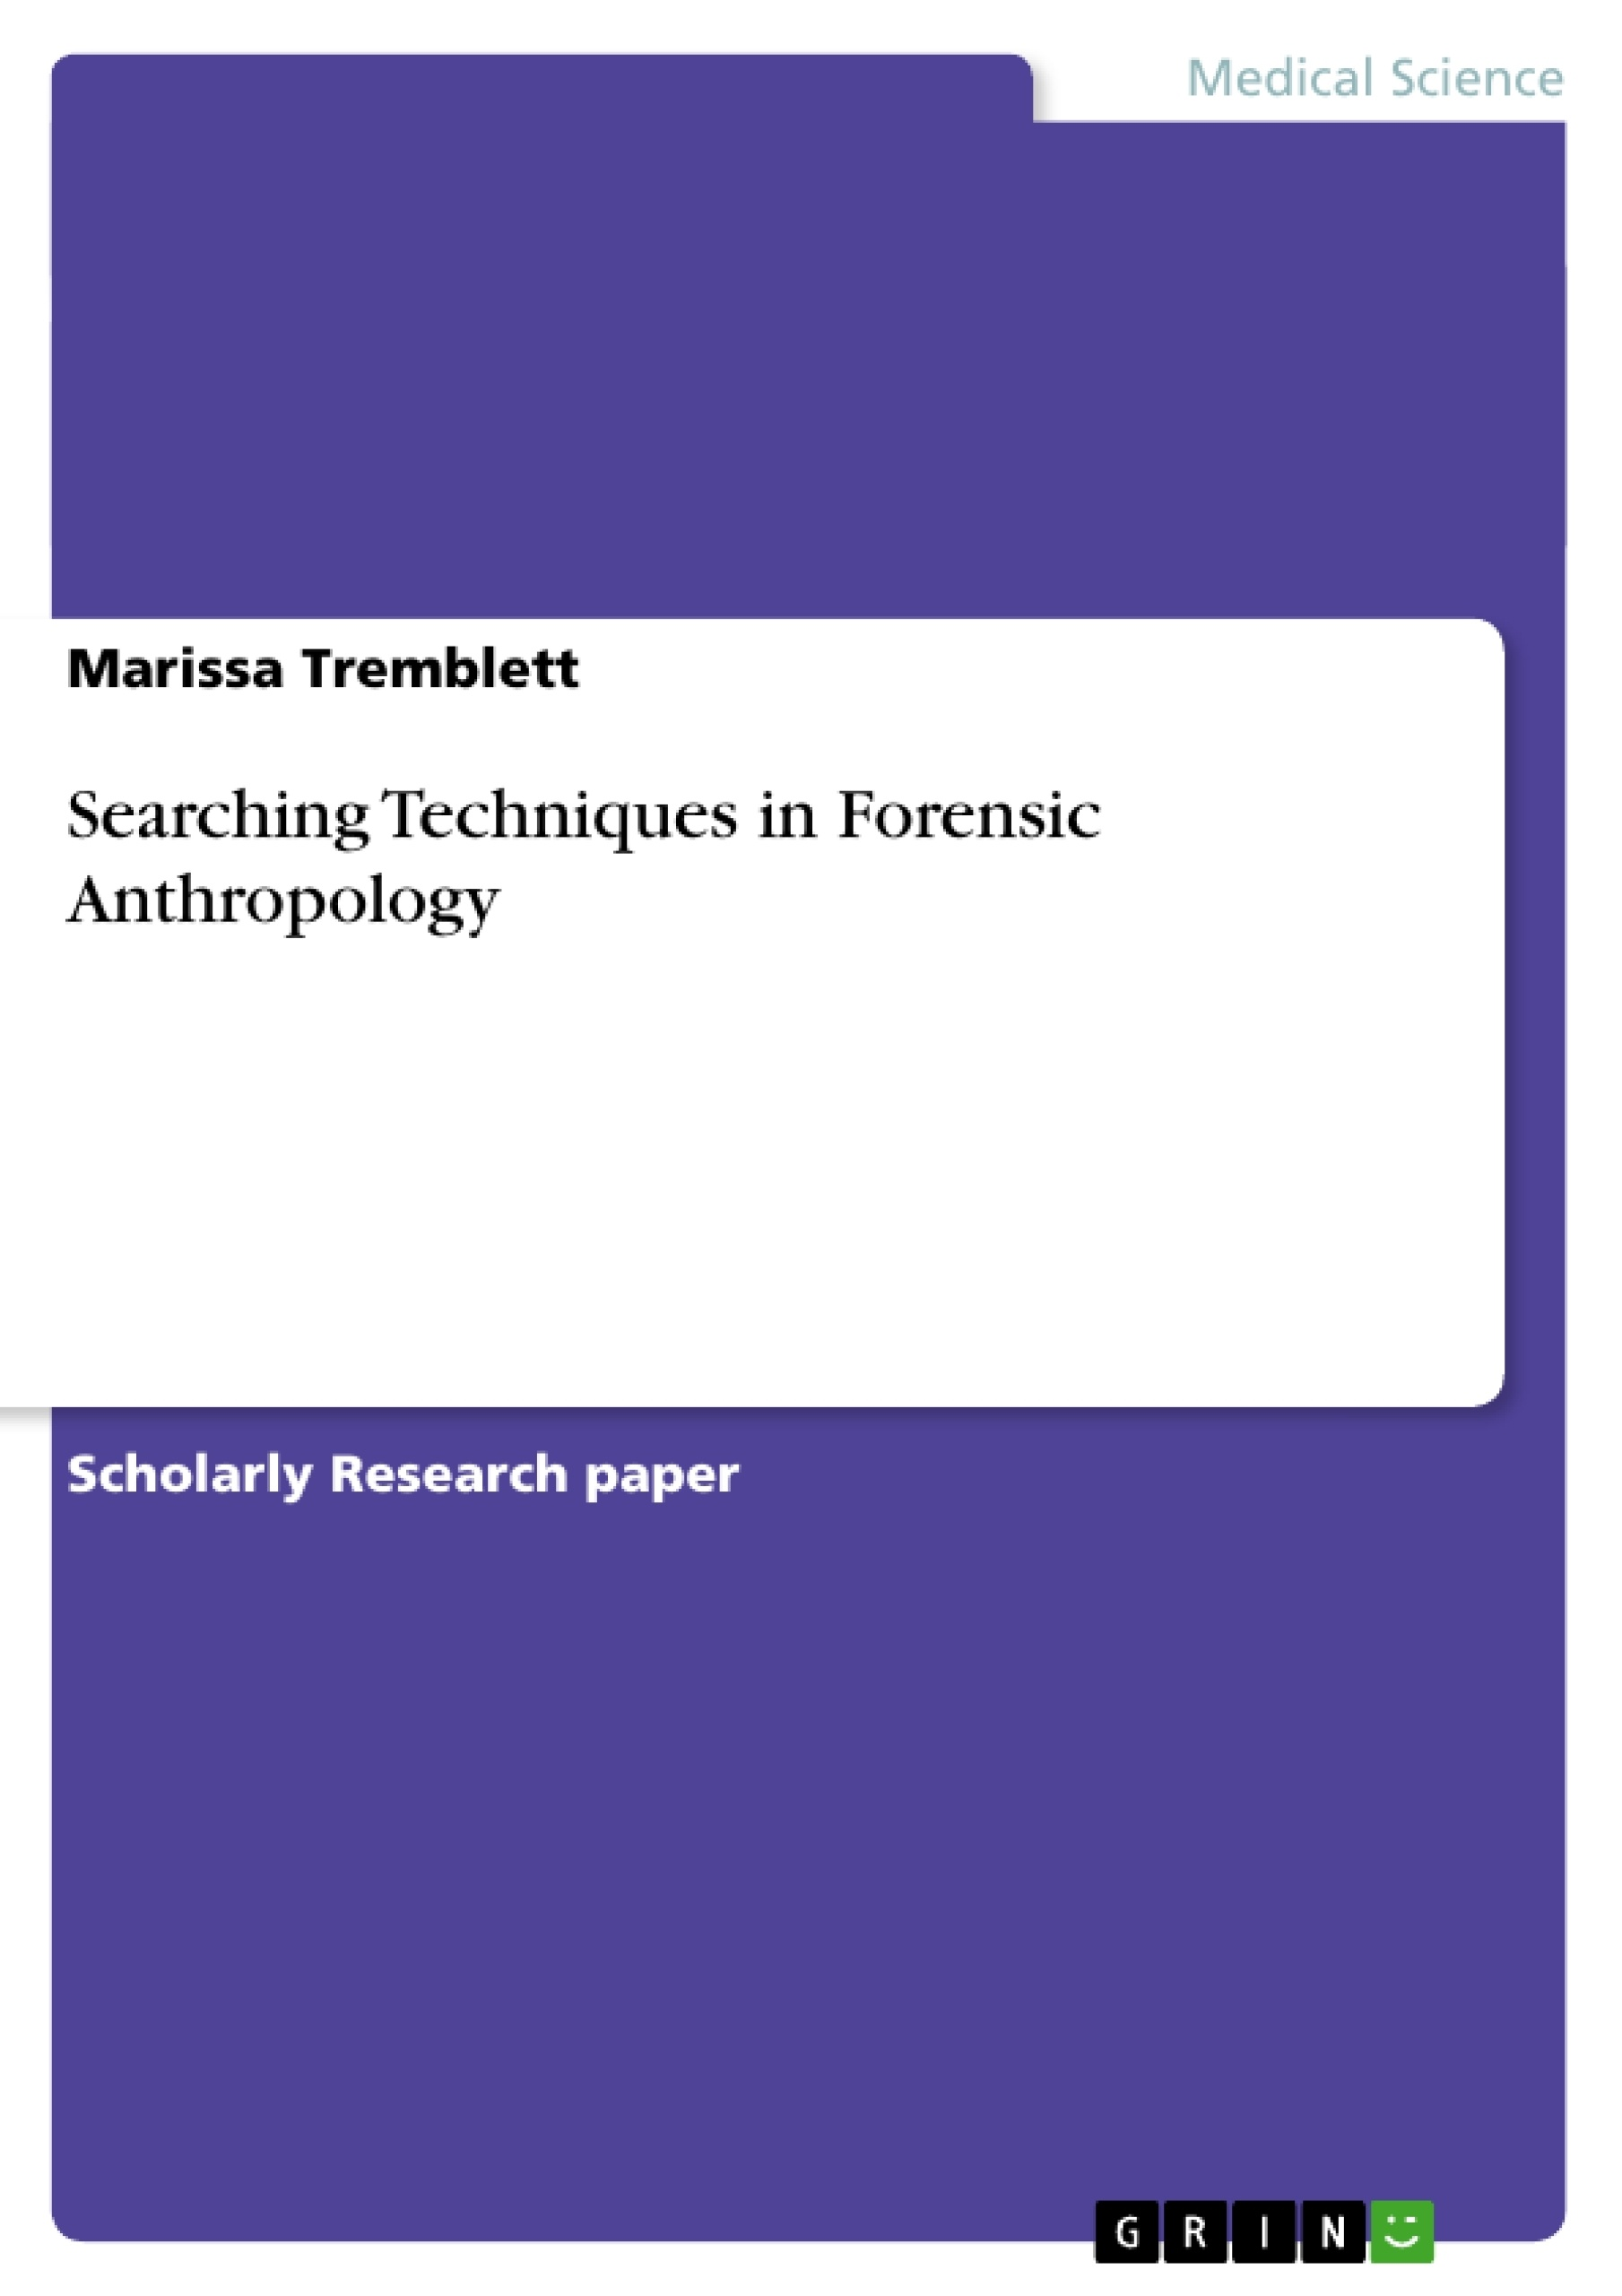 thesis anthropological studies Anthropologists analyze patterns of social relationships and responses, studying   linking this practical work with their area of interest for their thesis research.